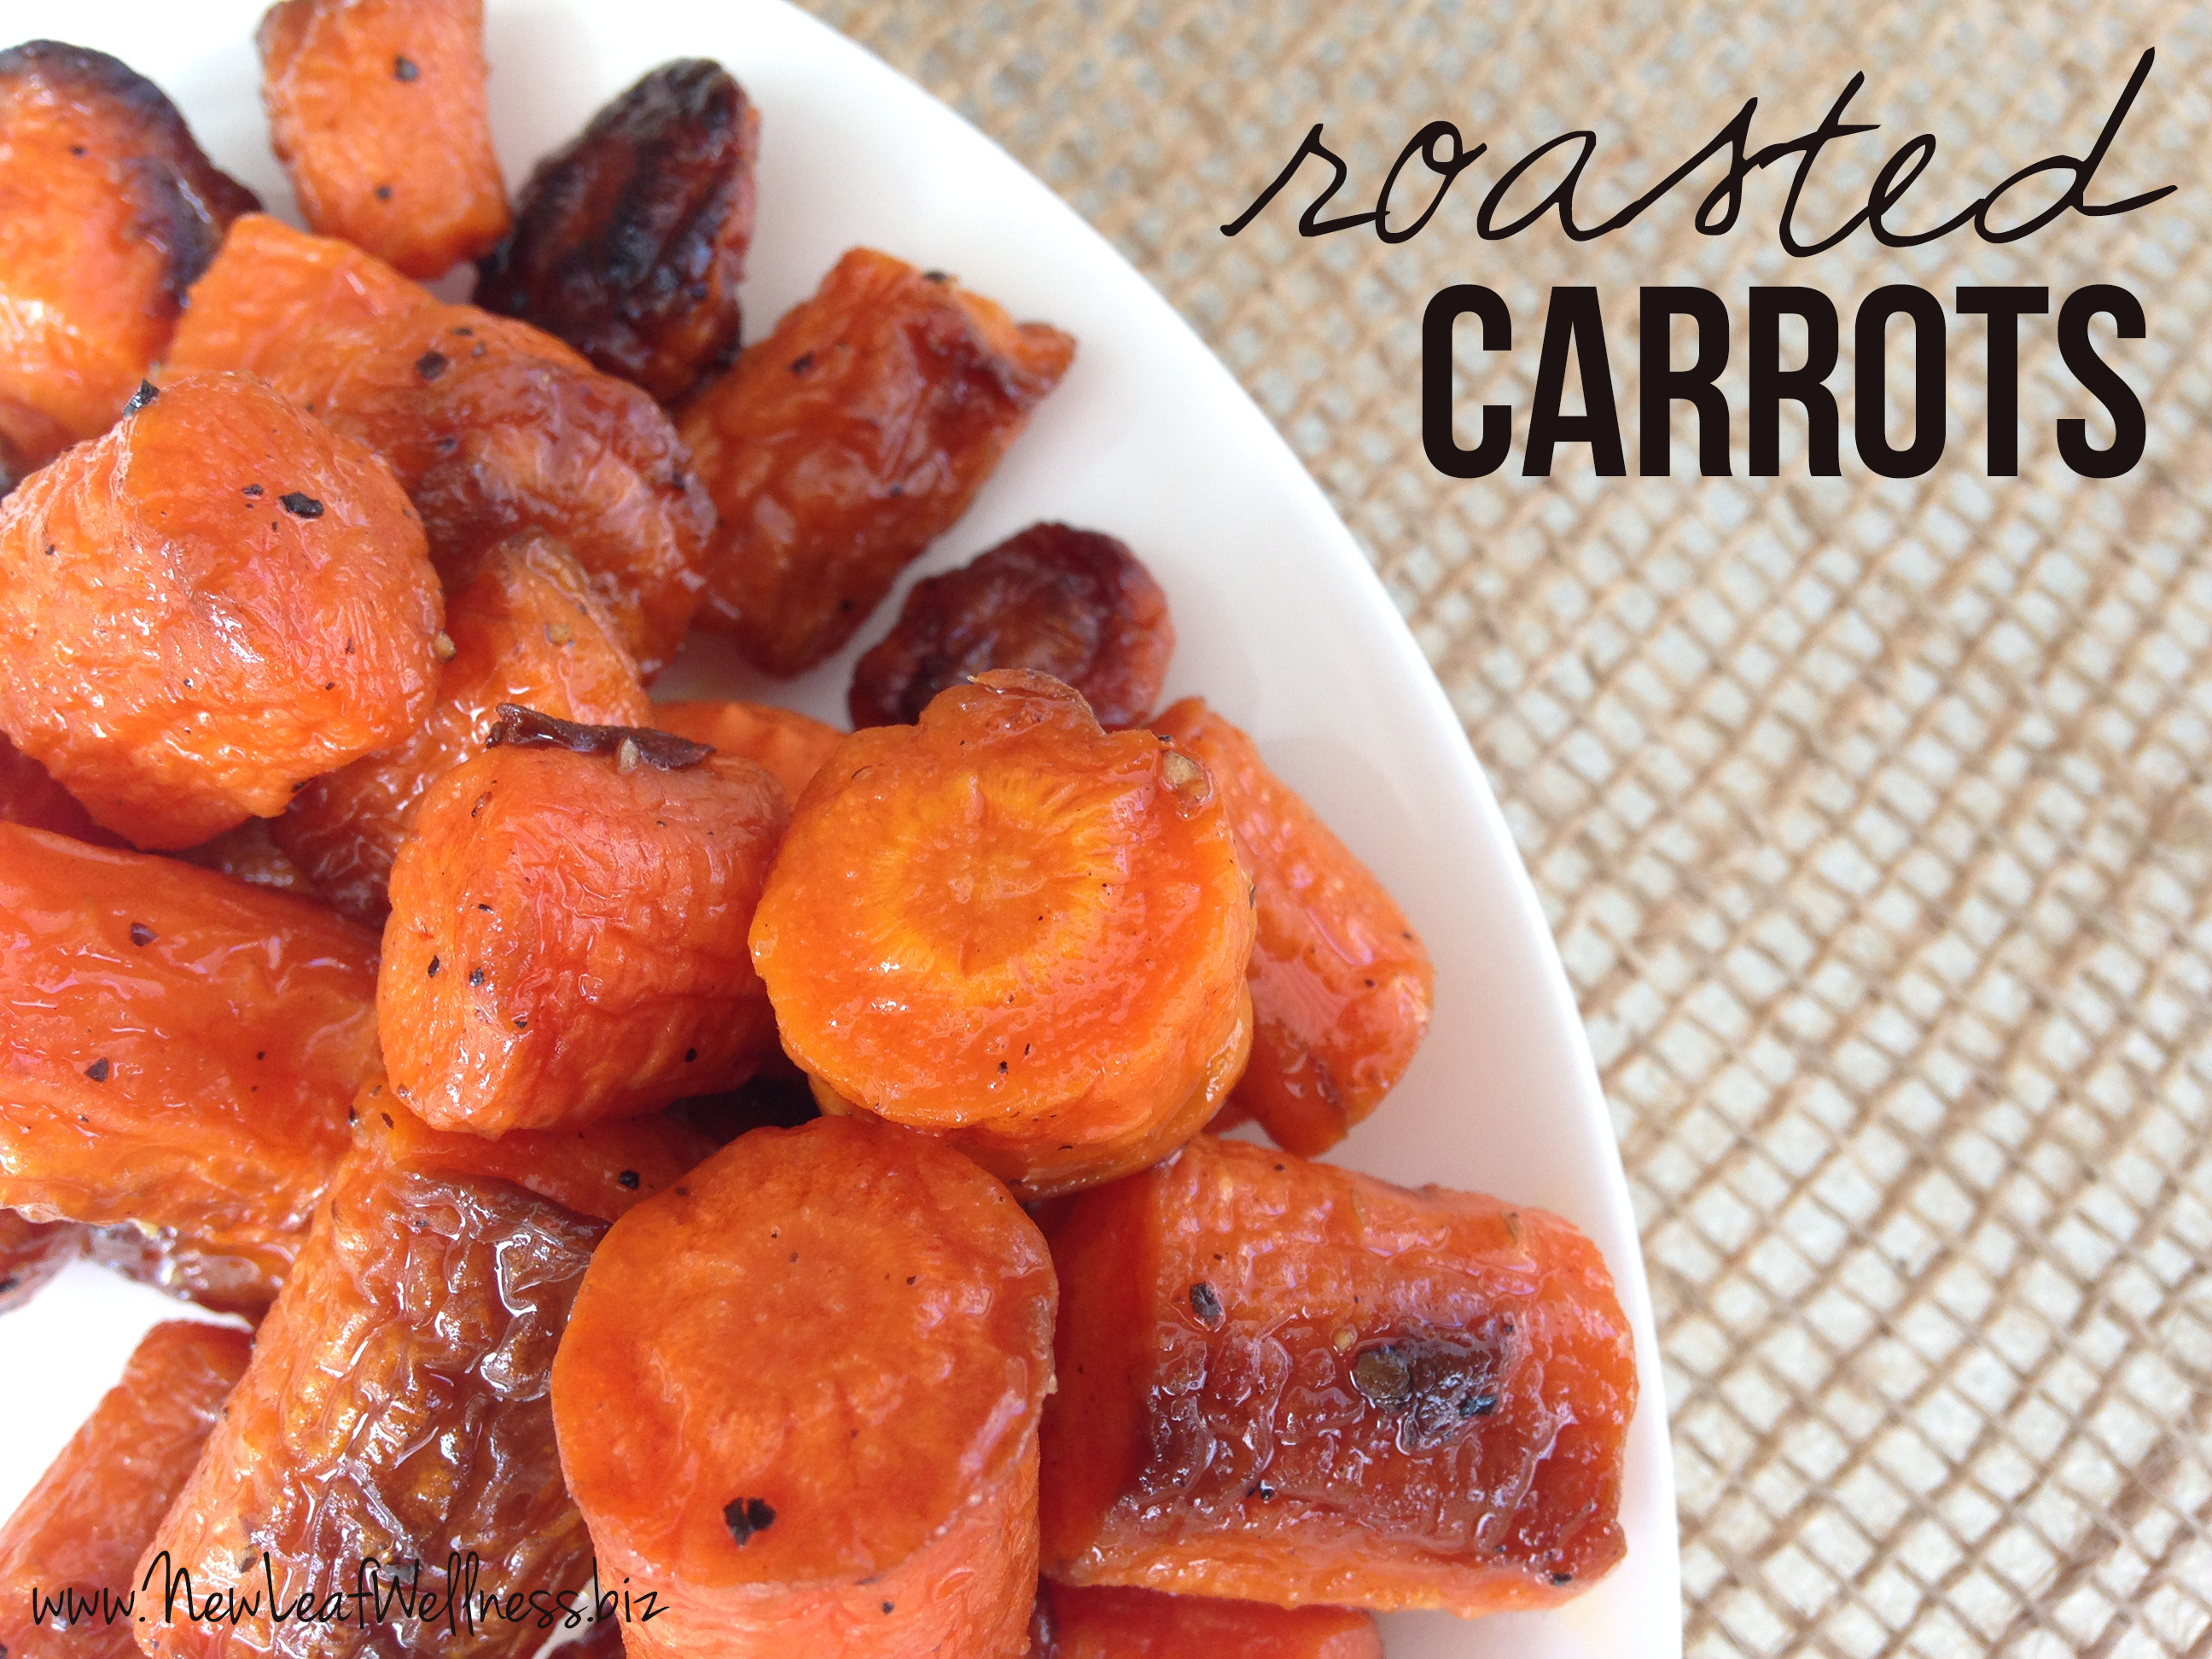 Recipe for roasted carrots new leaf wellness recipe for roasted carrots forumfinder Choice Image